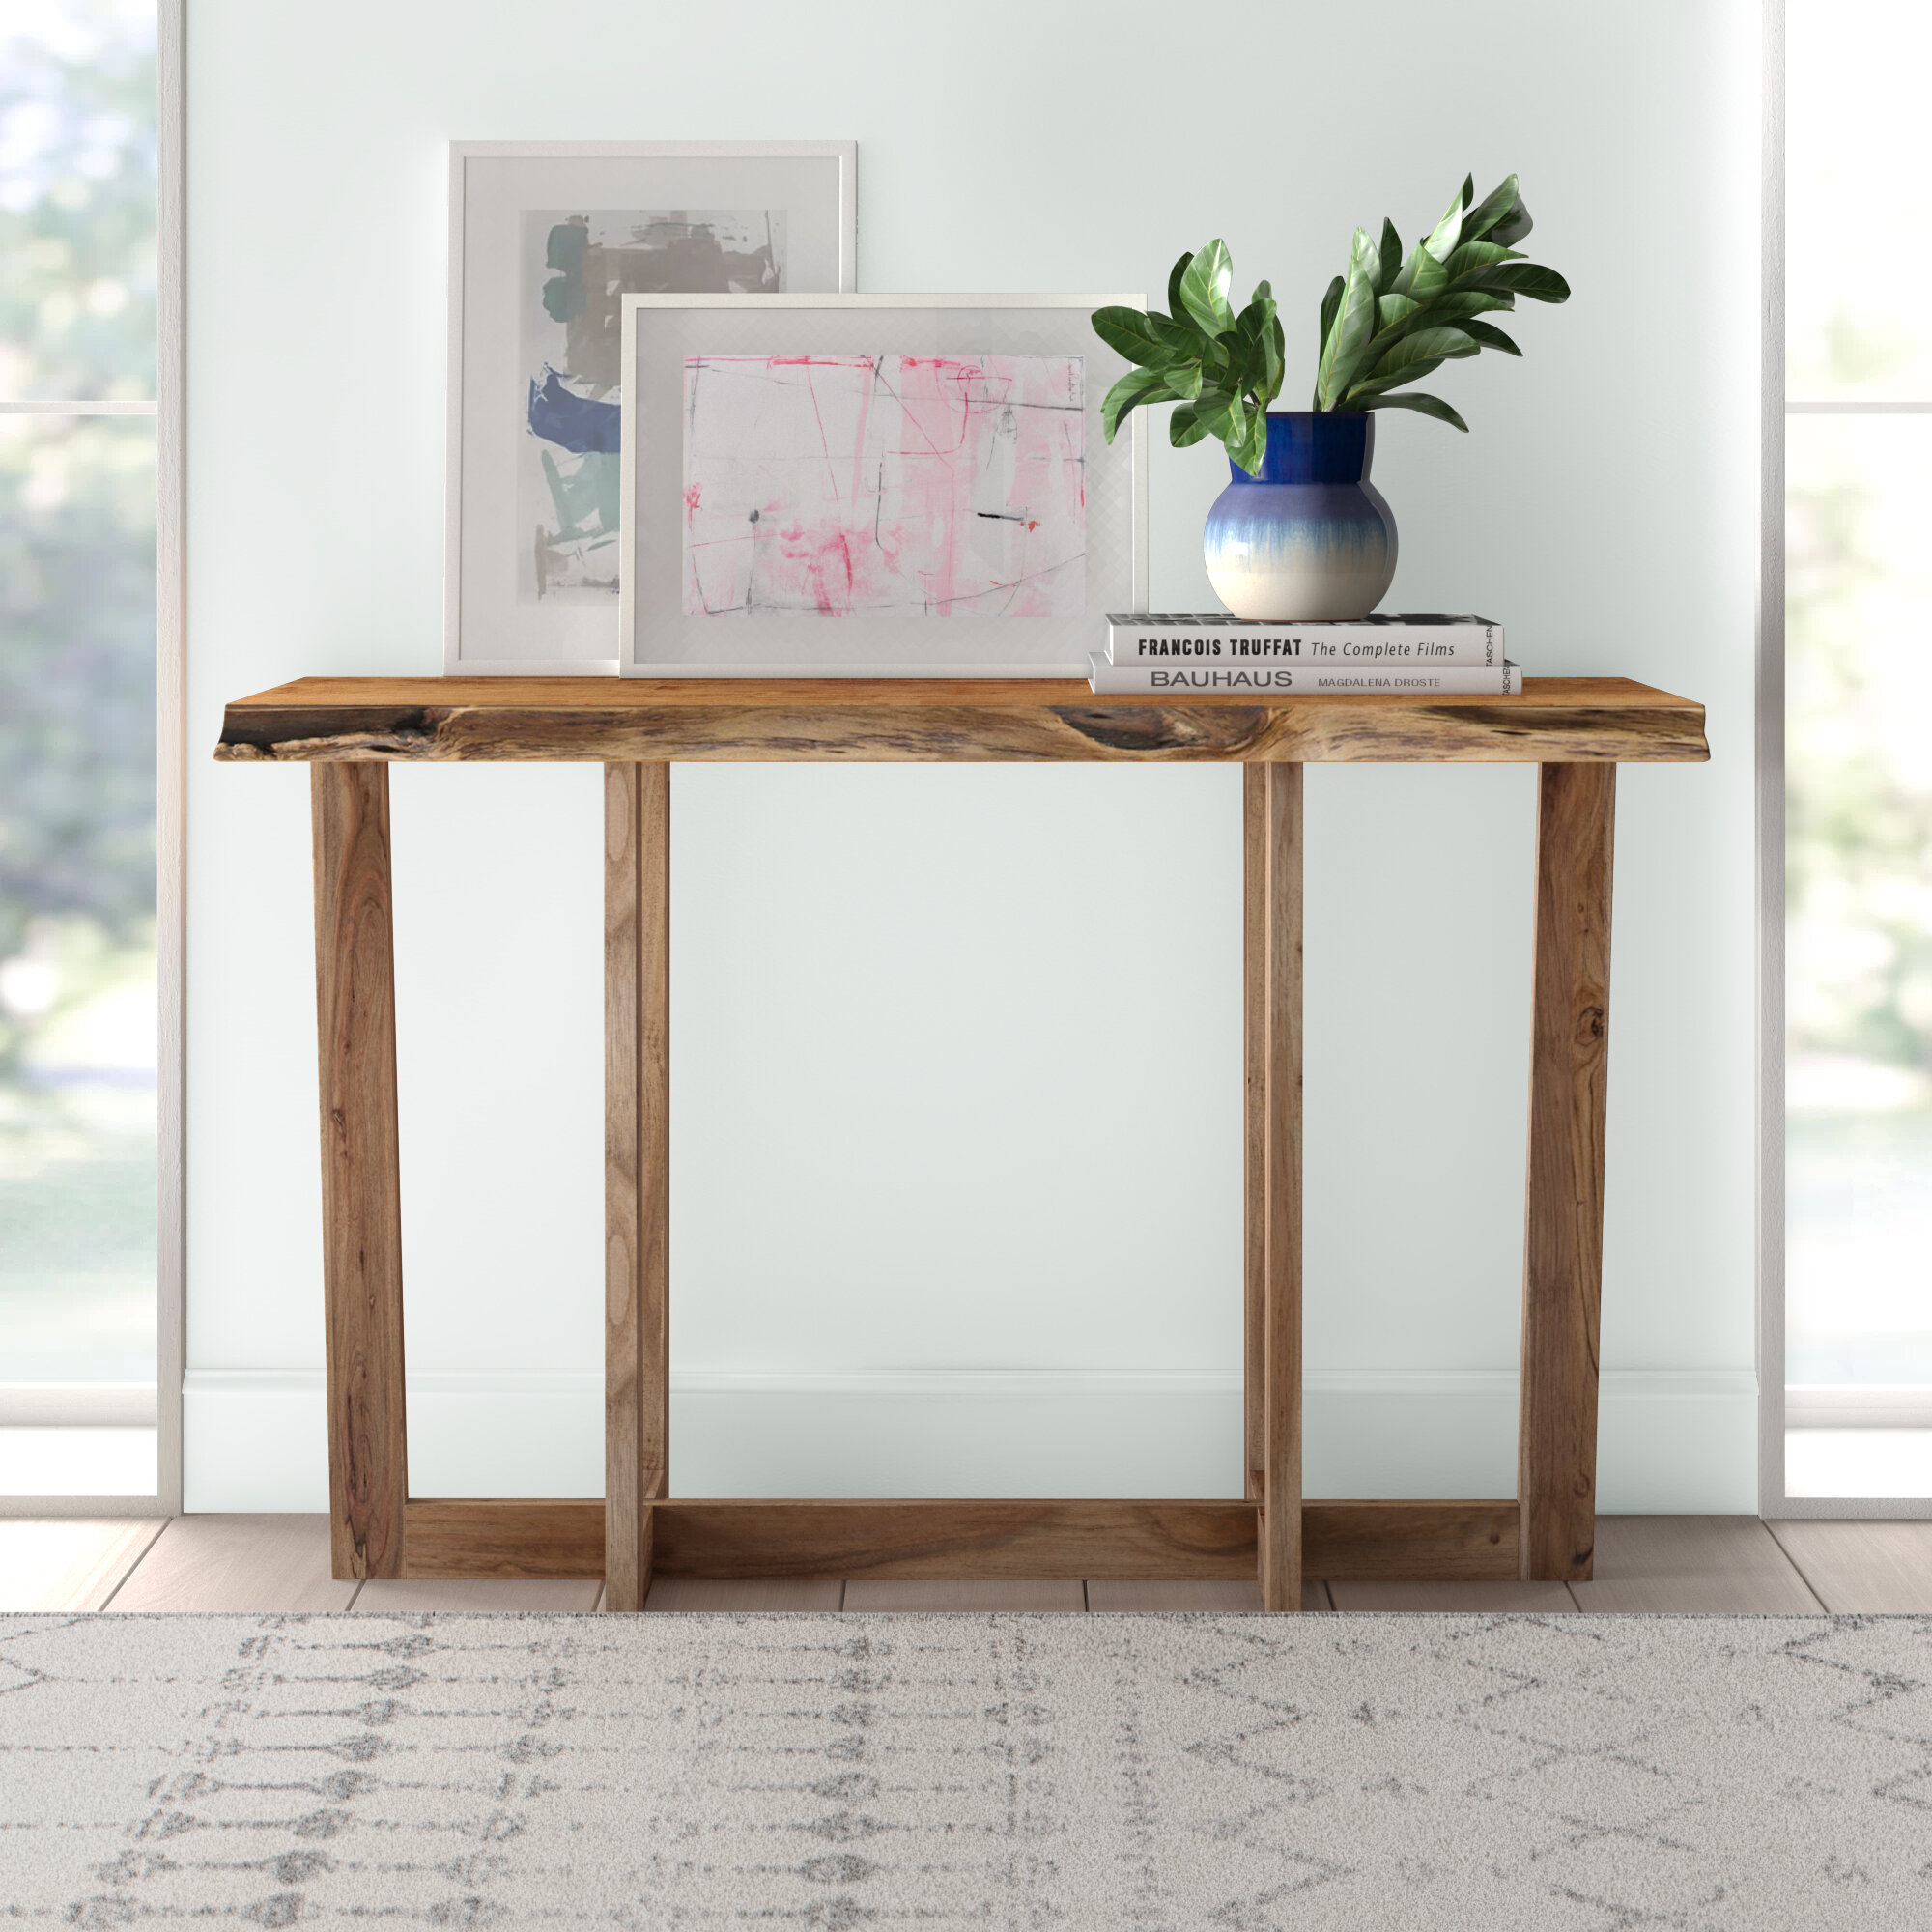 Details about  /Rustic Reclaimed Wood Console Sofa Table Distressed Finish Narrow Slim w//Shelf